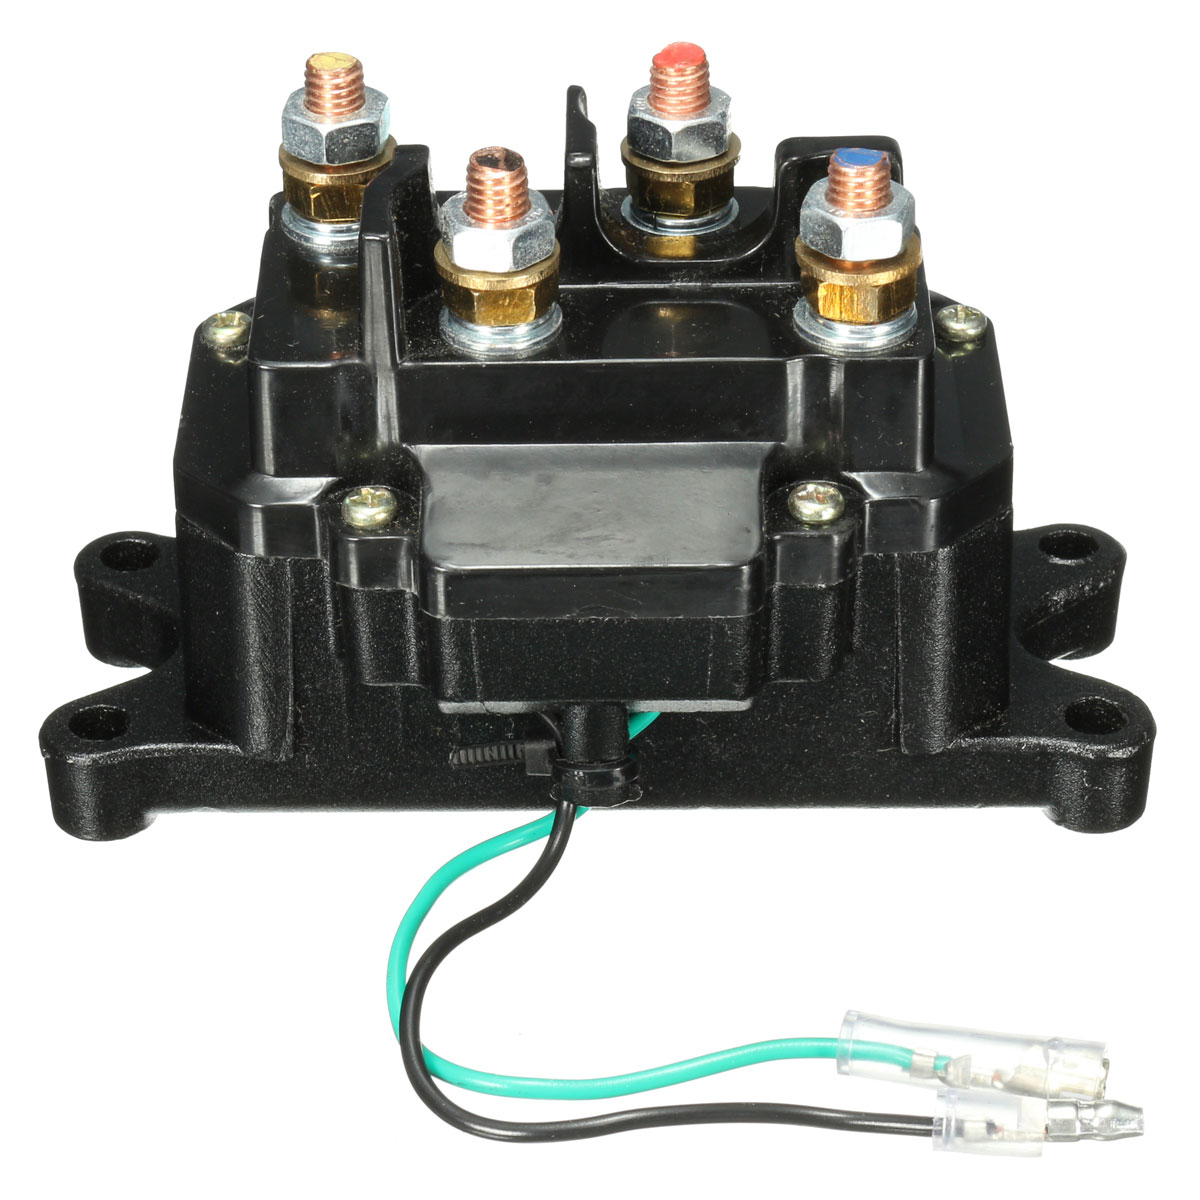 12v solenoid relay contactor winch rocker thumb switch for atv utv. Black Bedroom Furniture Sets. Home Design Ideas